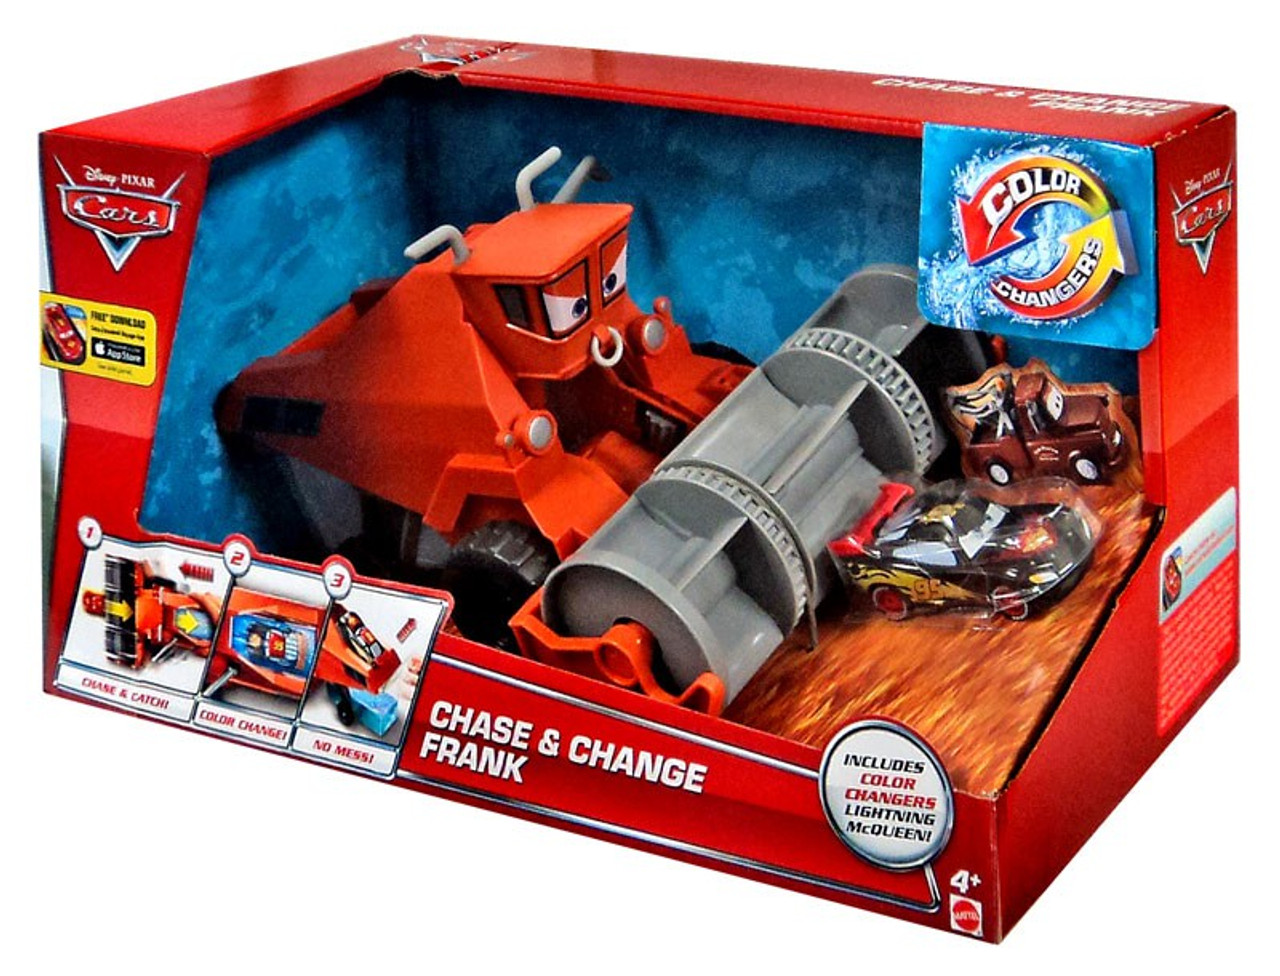 Cars Color Changers: Disney Cars Color Changers Chase Change Frank 155 Playset